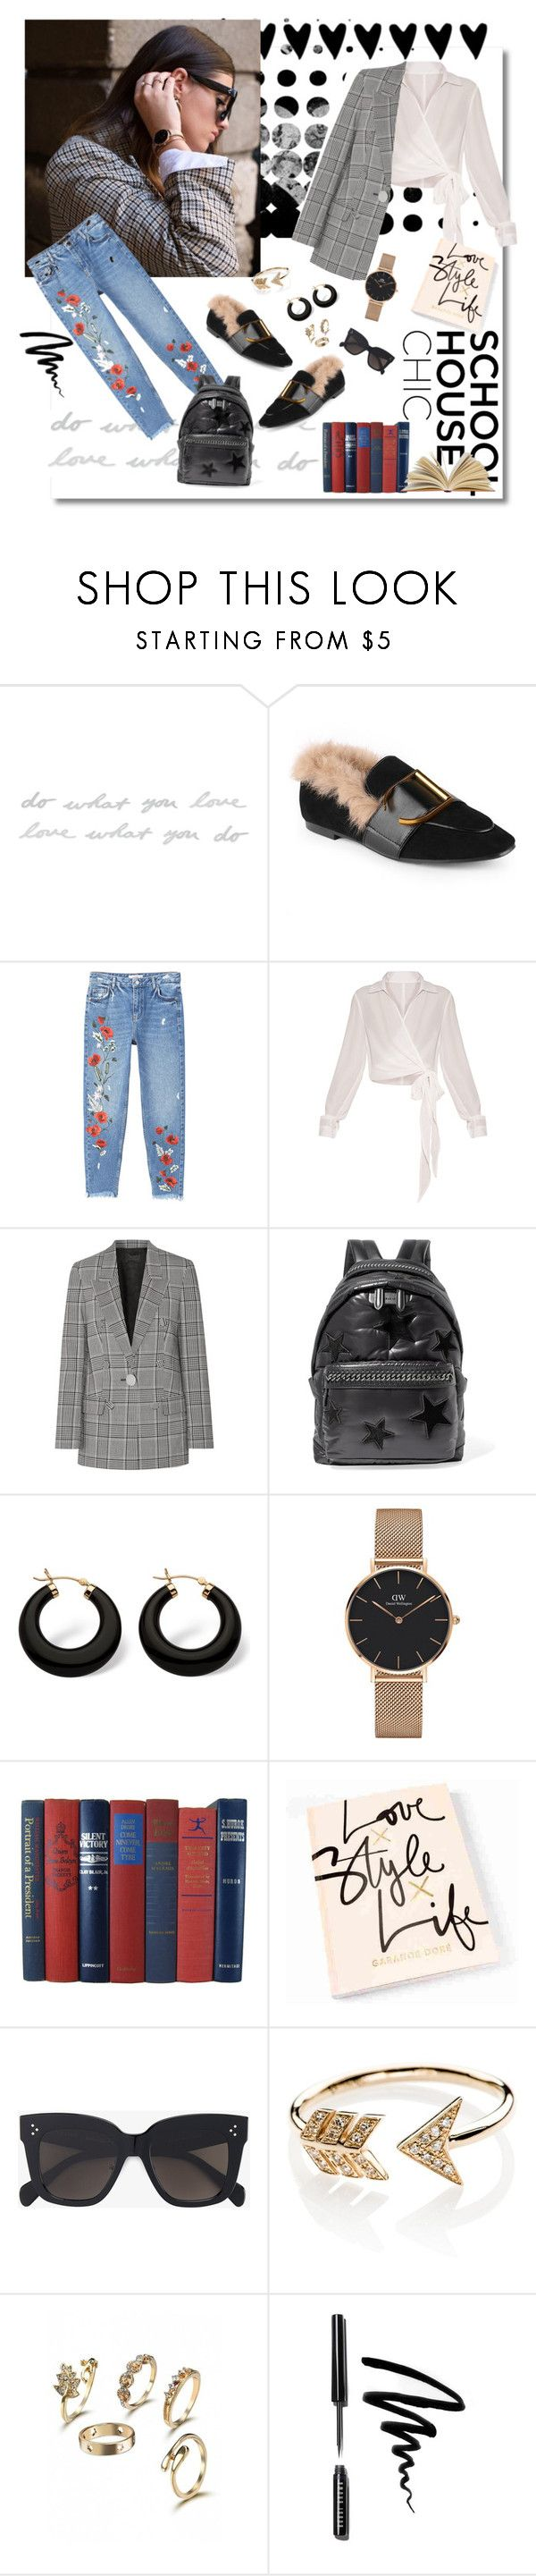 """Style"" by ladylly ❤ liked on Polyvore featuring Umbra, MANGO, Alexander Wang, STELLA McCARTNEY, Palm Beach Jewelry, Daniel Wellington, CÉLINE, EF Collection, Bobbi Brown Cosmetics and school"